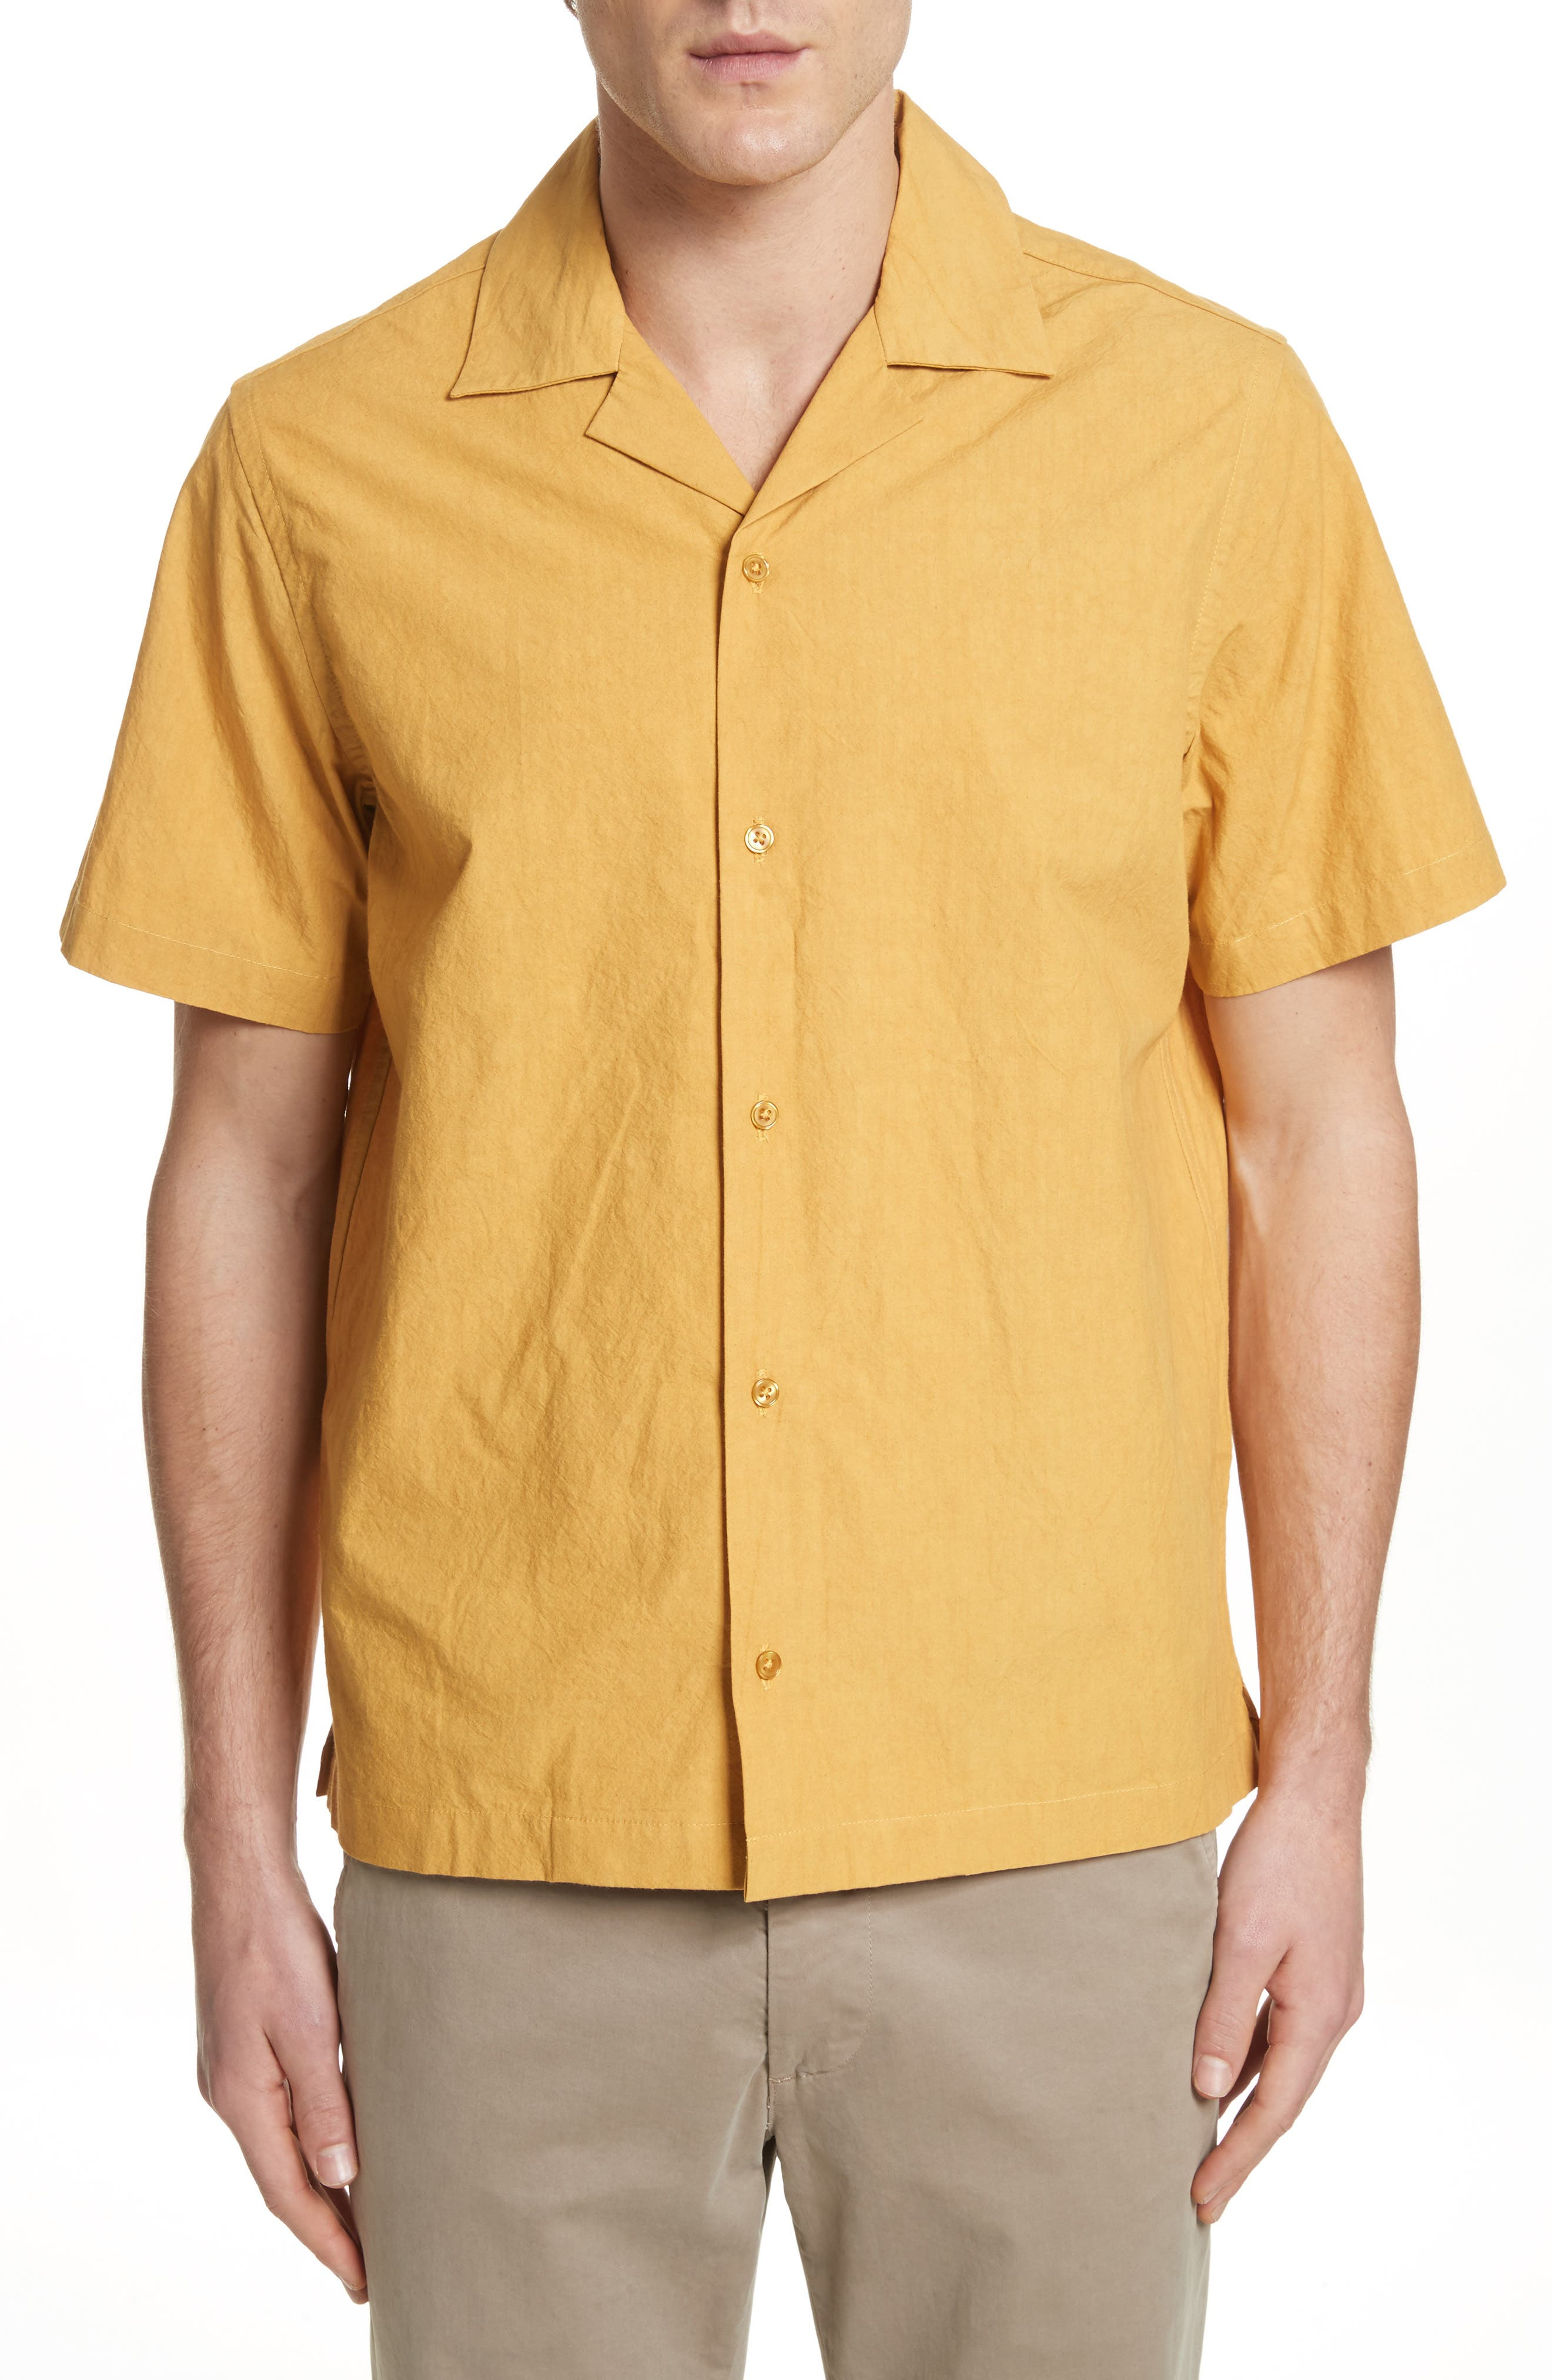 Canty Woven Camp Shirt,                         Main,                         color, 725